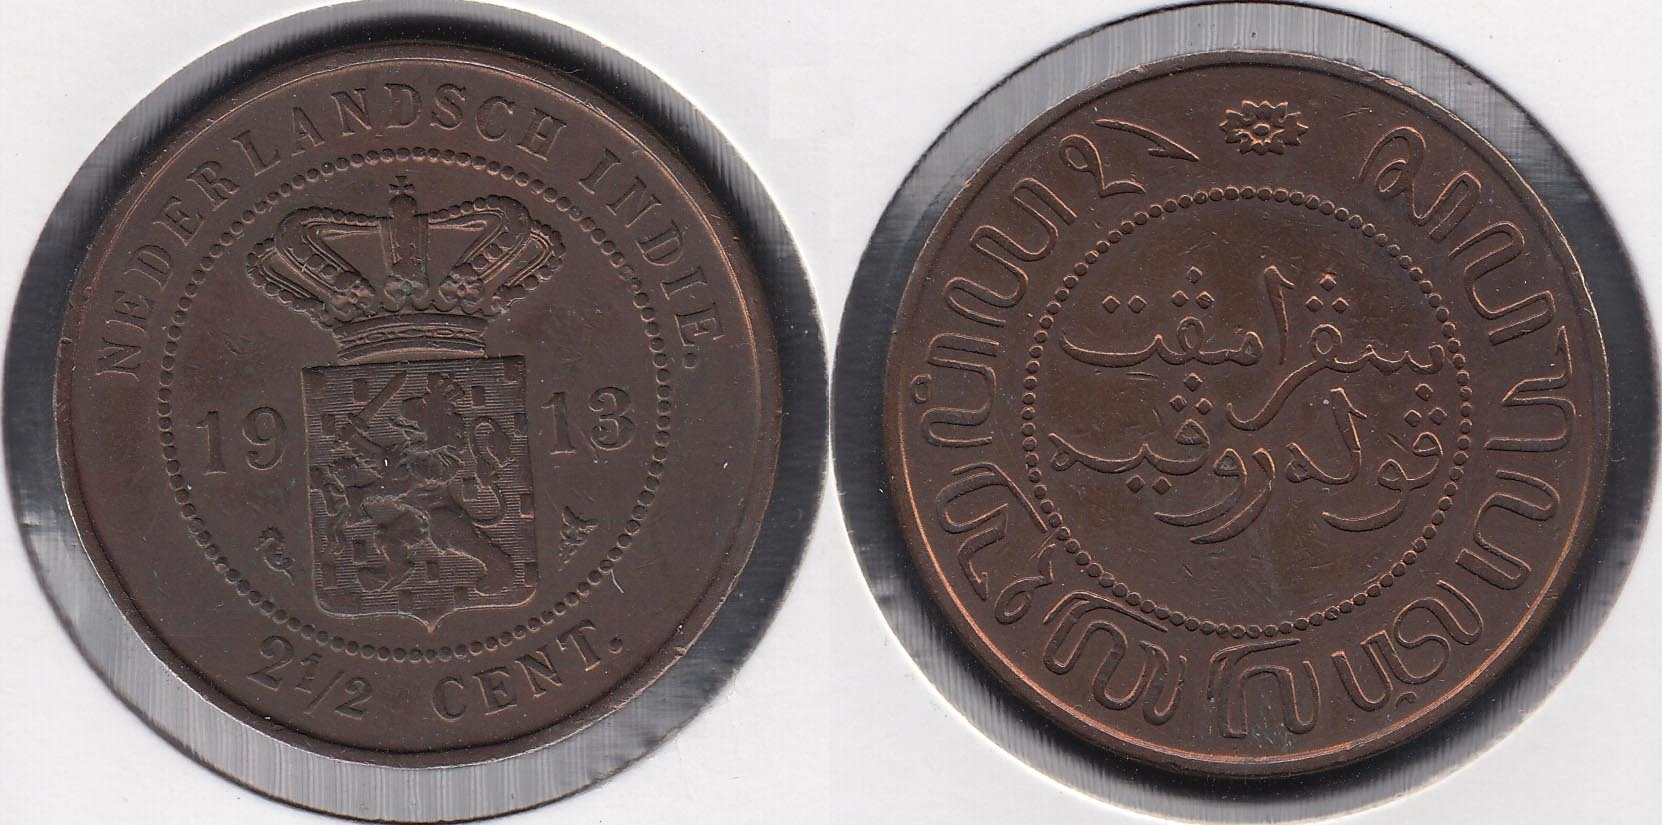 INDIA HOLANDESA - NETHERLAND EAST INDIES. 2 1/2 CENTIMOS (CENTS) DE 1913.